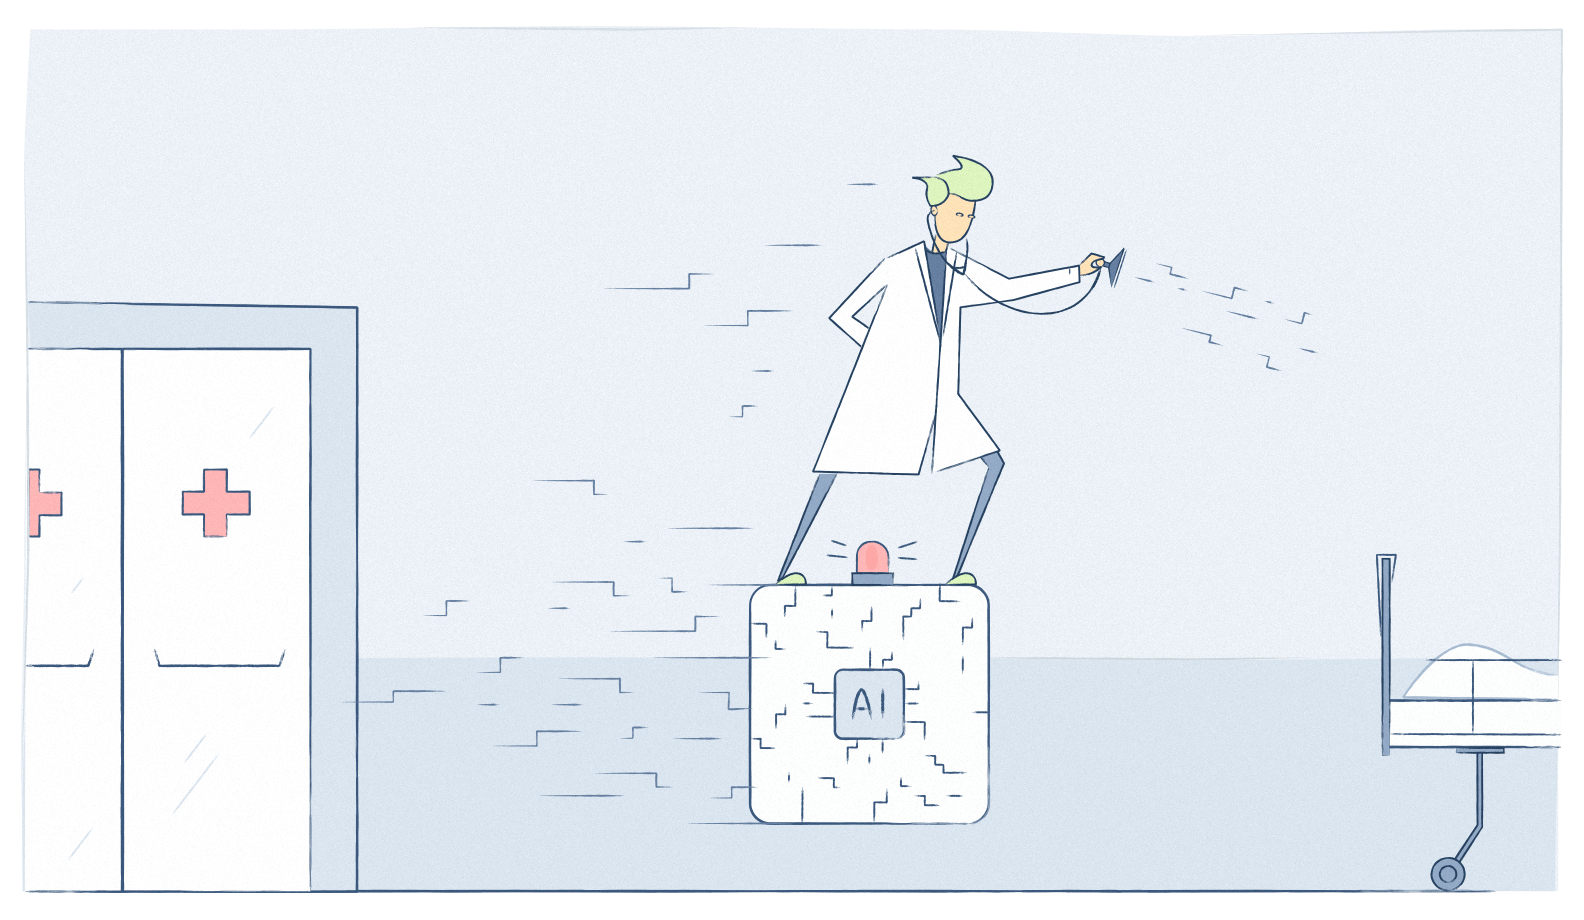 Illustration: AI supporting a physician